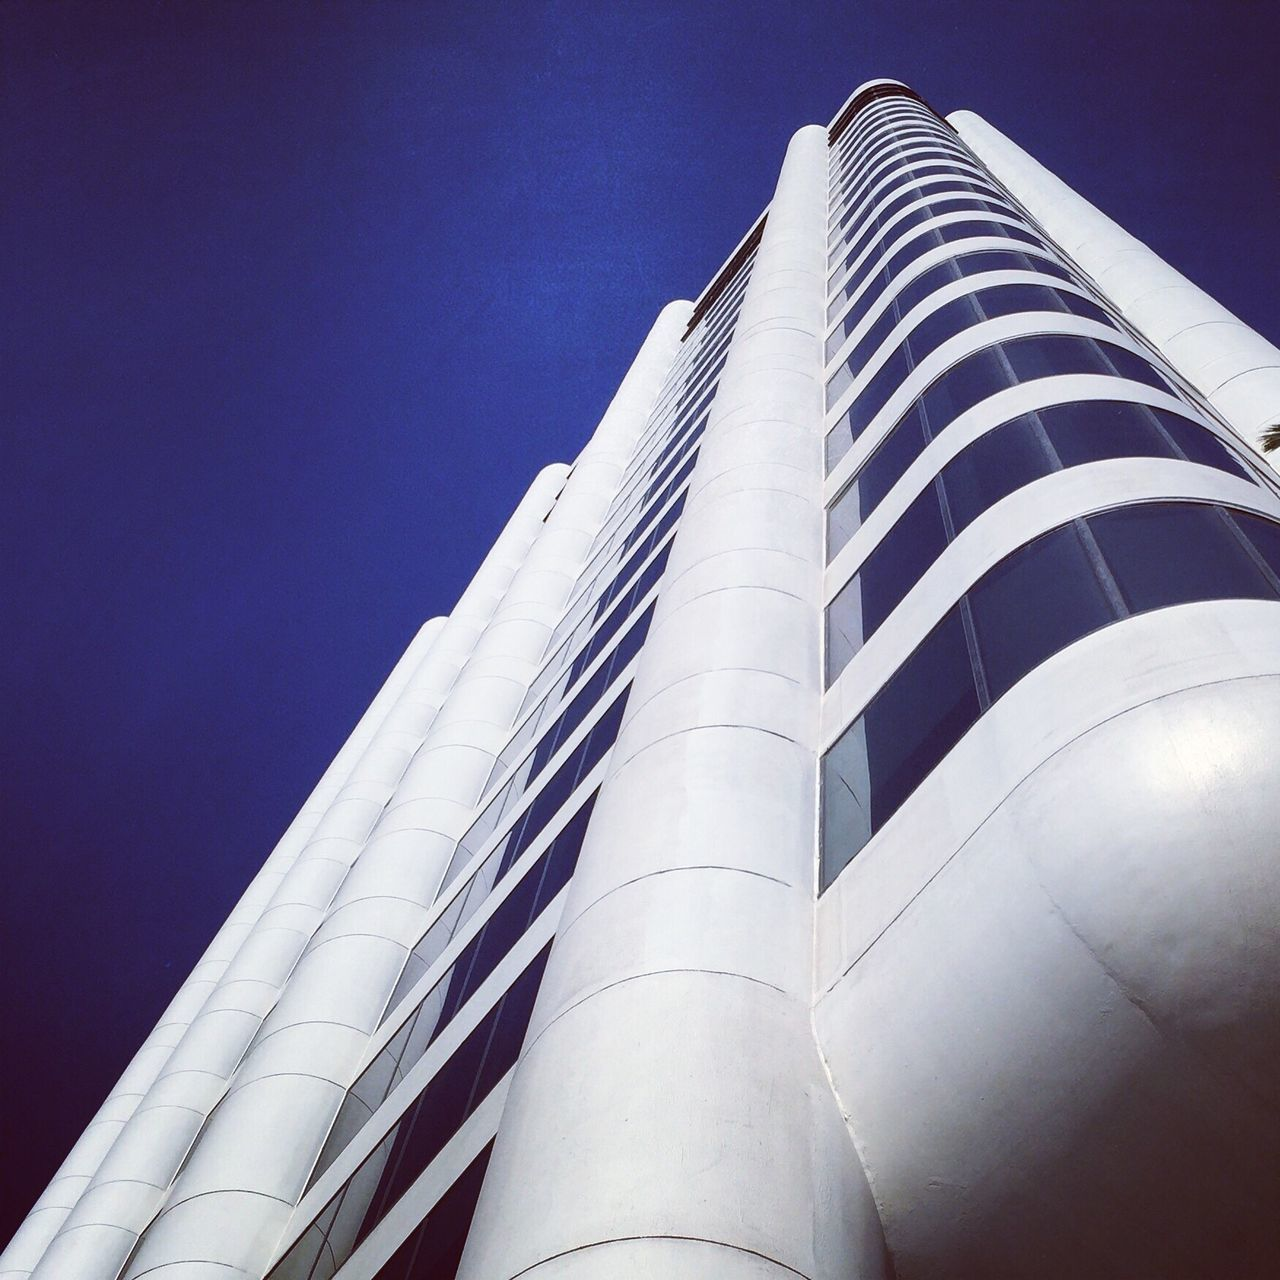 architecture, built structure, low angle view, building exterior, modern, tall - high, skyscraper, no people, city, outdoors, day, travel destinations, tall, blue, sky, clear sky